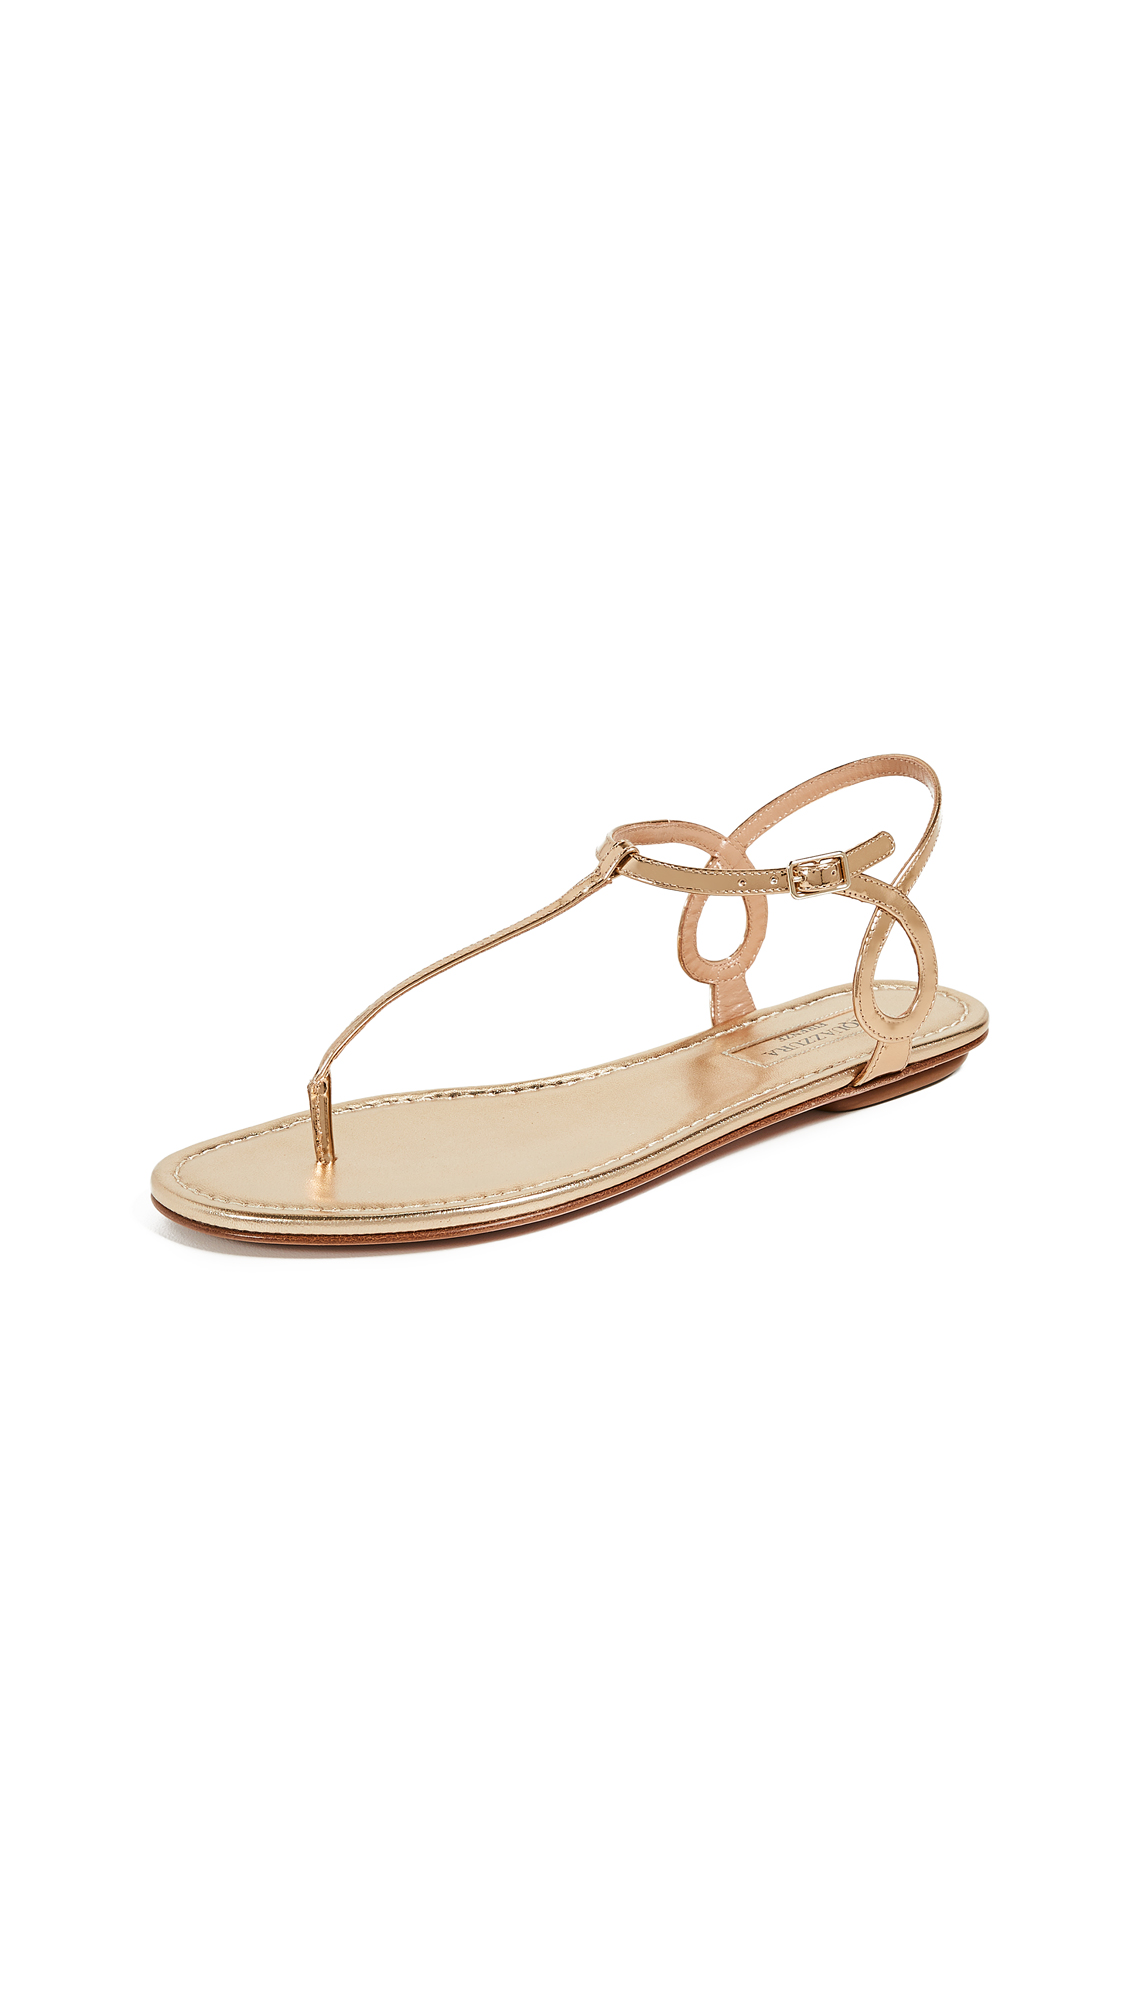 Aquazzura Almost Bare Flat Sandals - Soft Gold